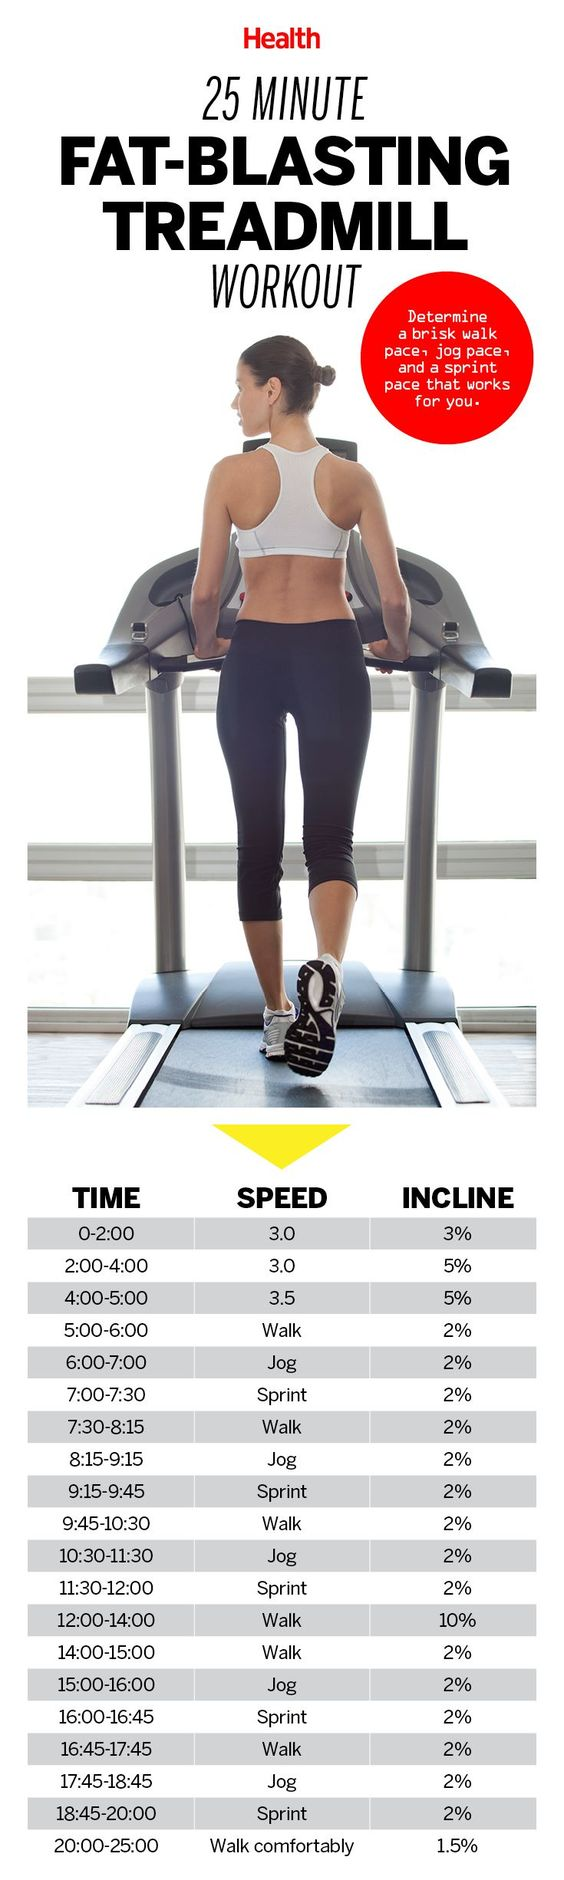 Fat-Blasting Treadmill Workout